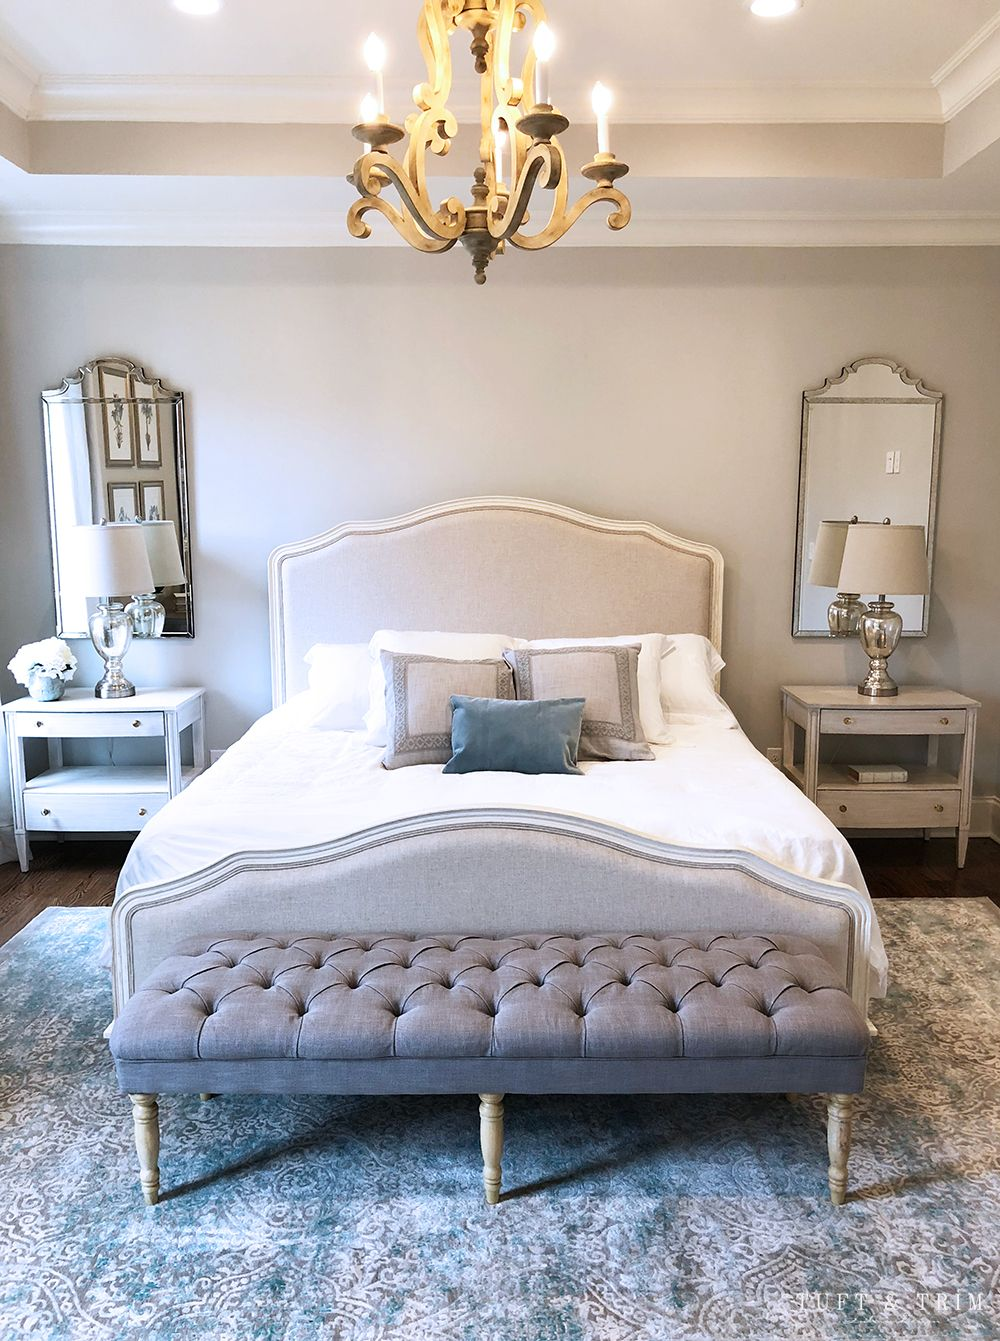 French Chic Bedroom e-Design | Tuft & Trim | Boho bedroom decor ...